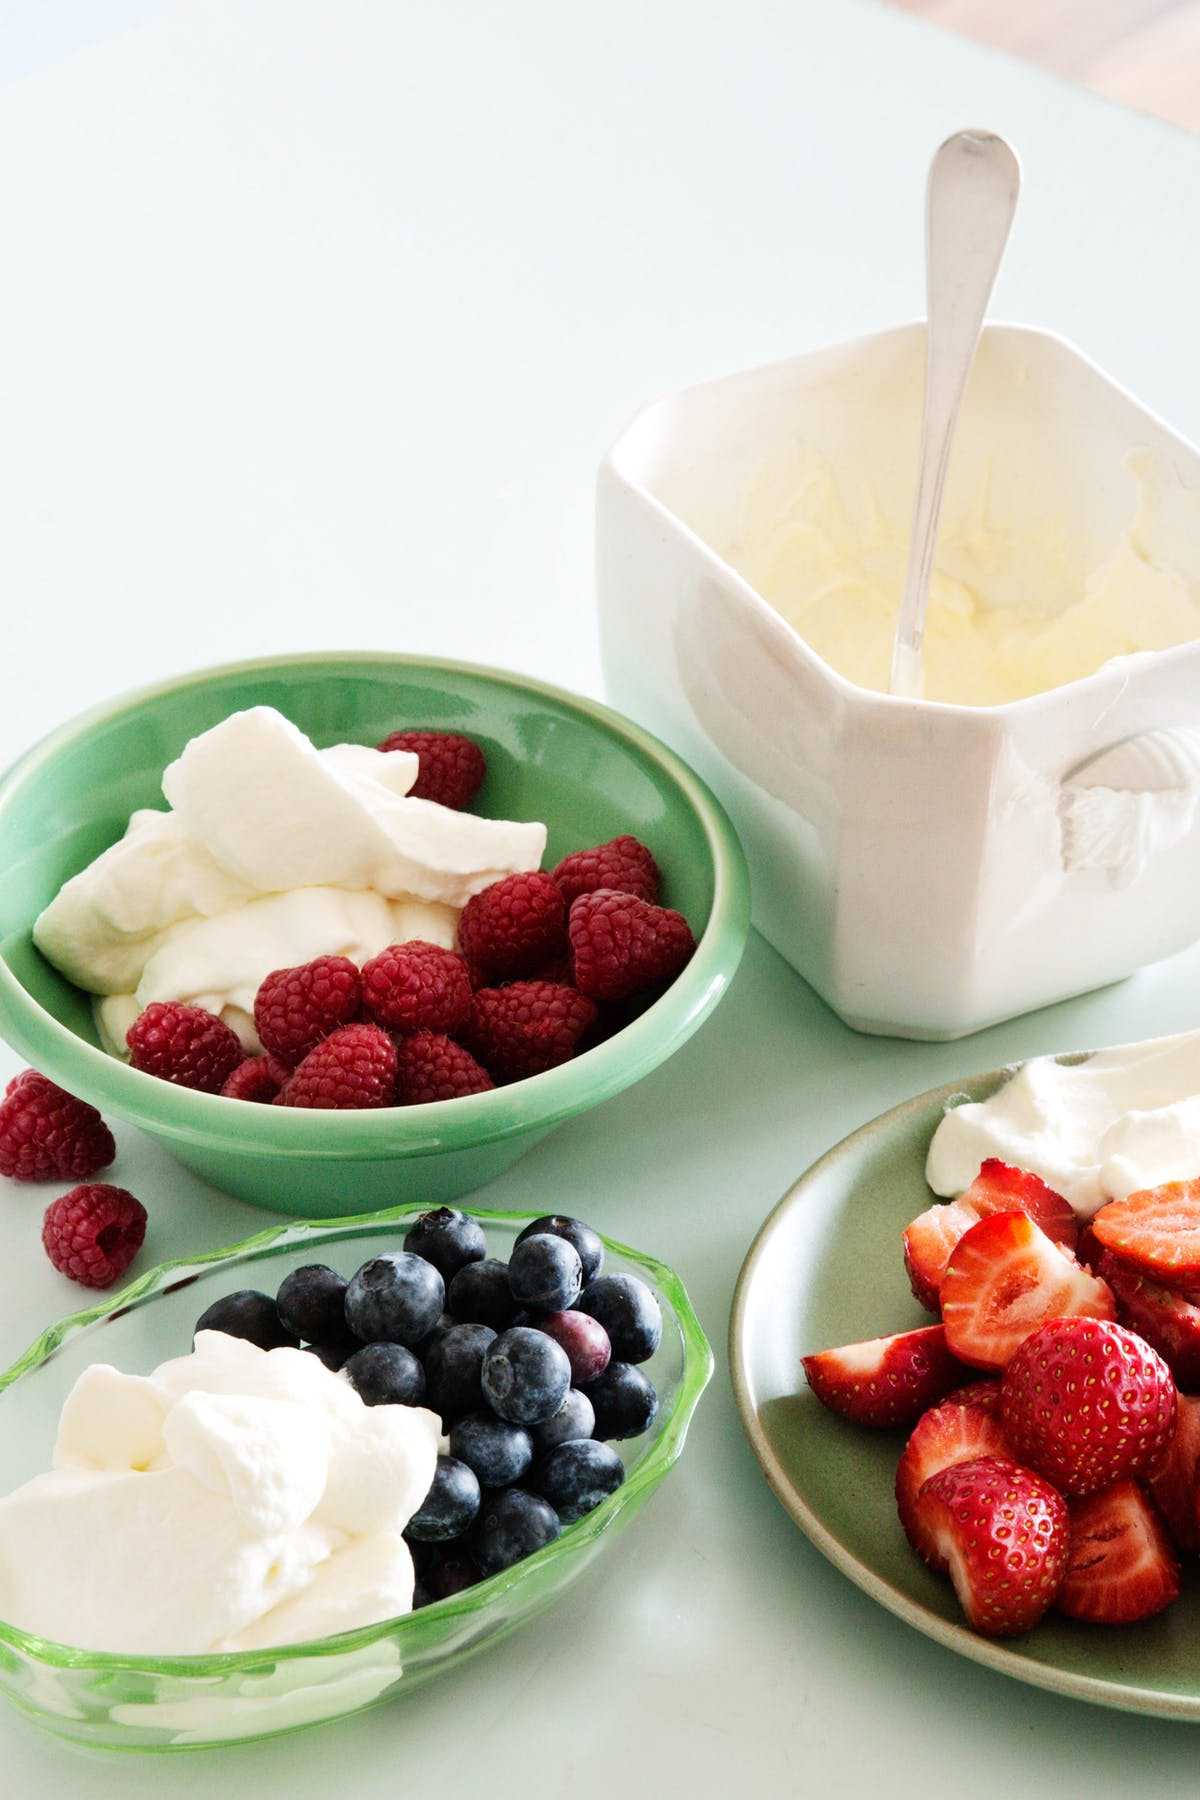 Berries and whipped cream